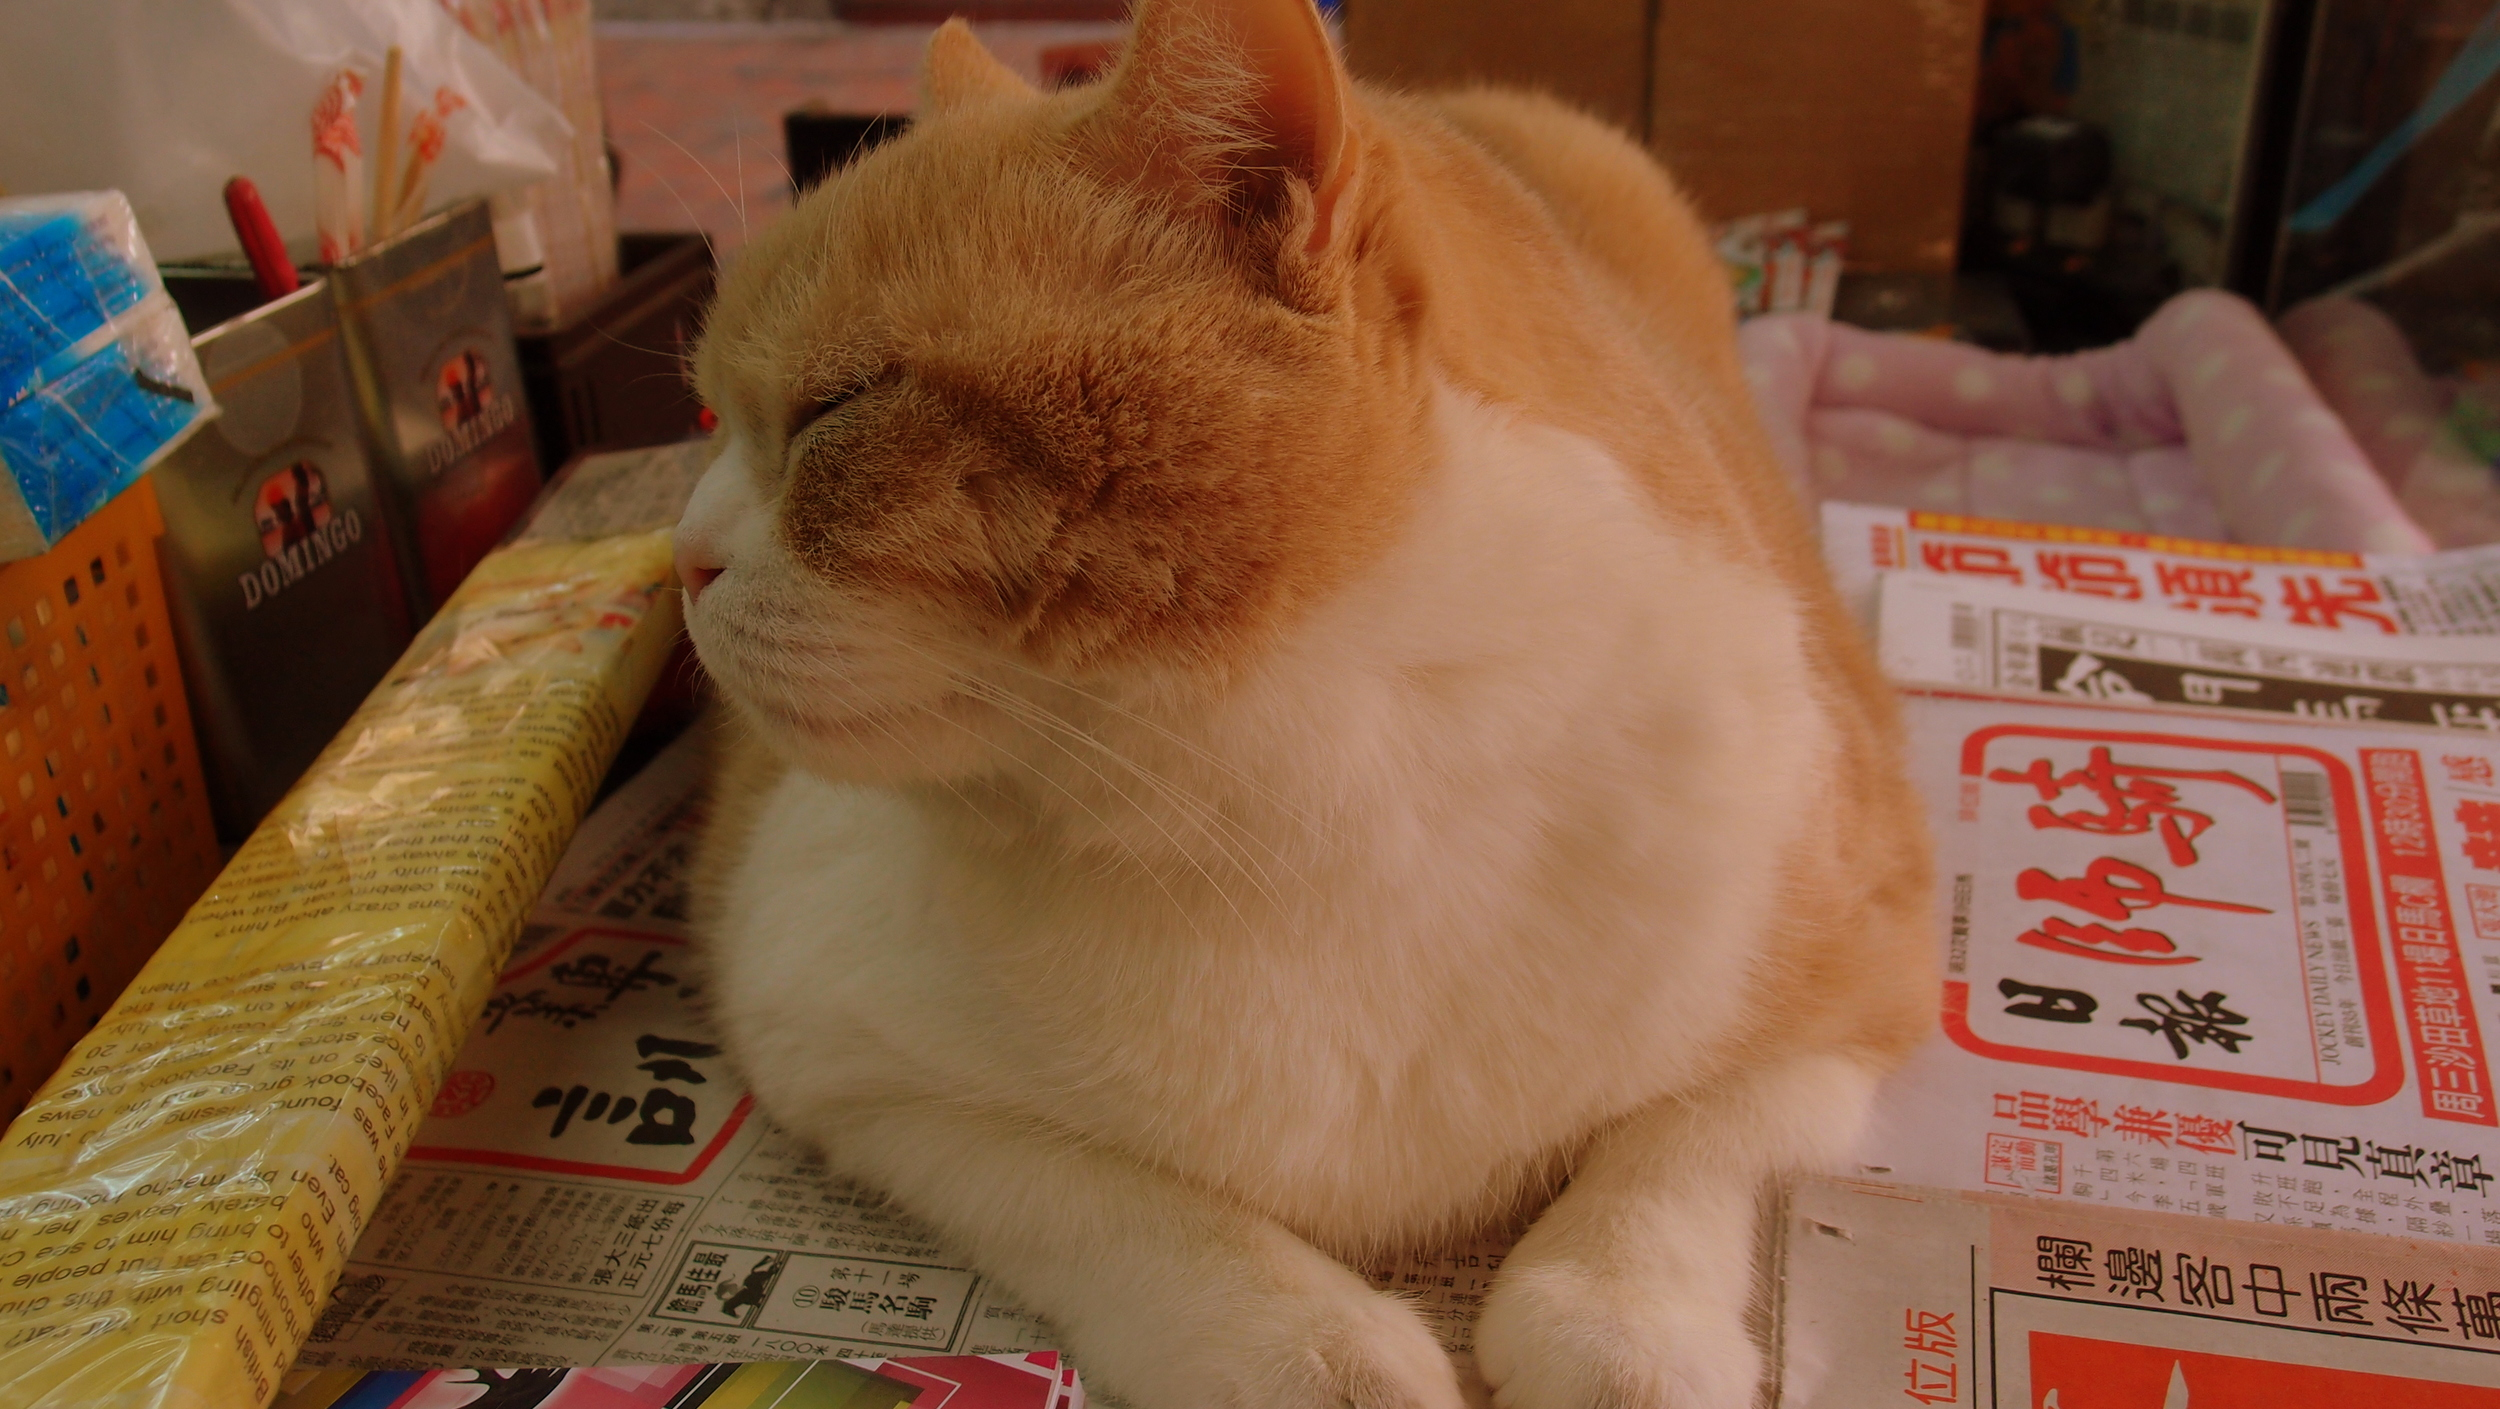 Meet Brother Creamy, this cat is a minor legend in Hong Kong, he has been on TV, posed with stars and generally laps up the attention. He is one fat cat and I love him. He resides at a little corner shop near the Hotel Icon.